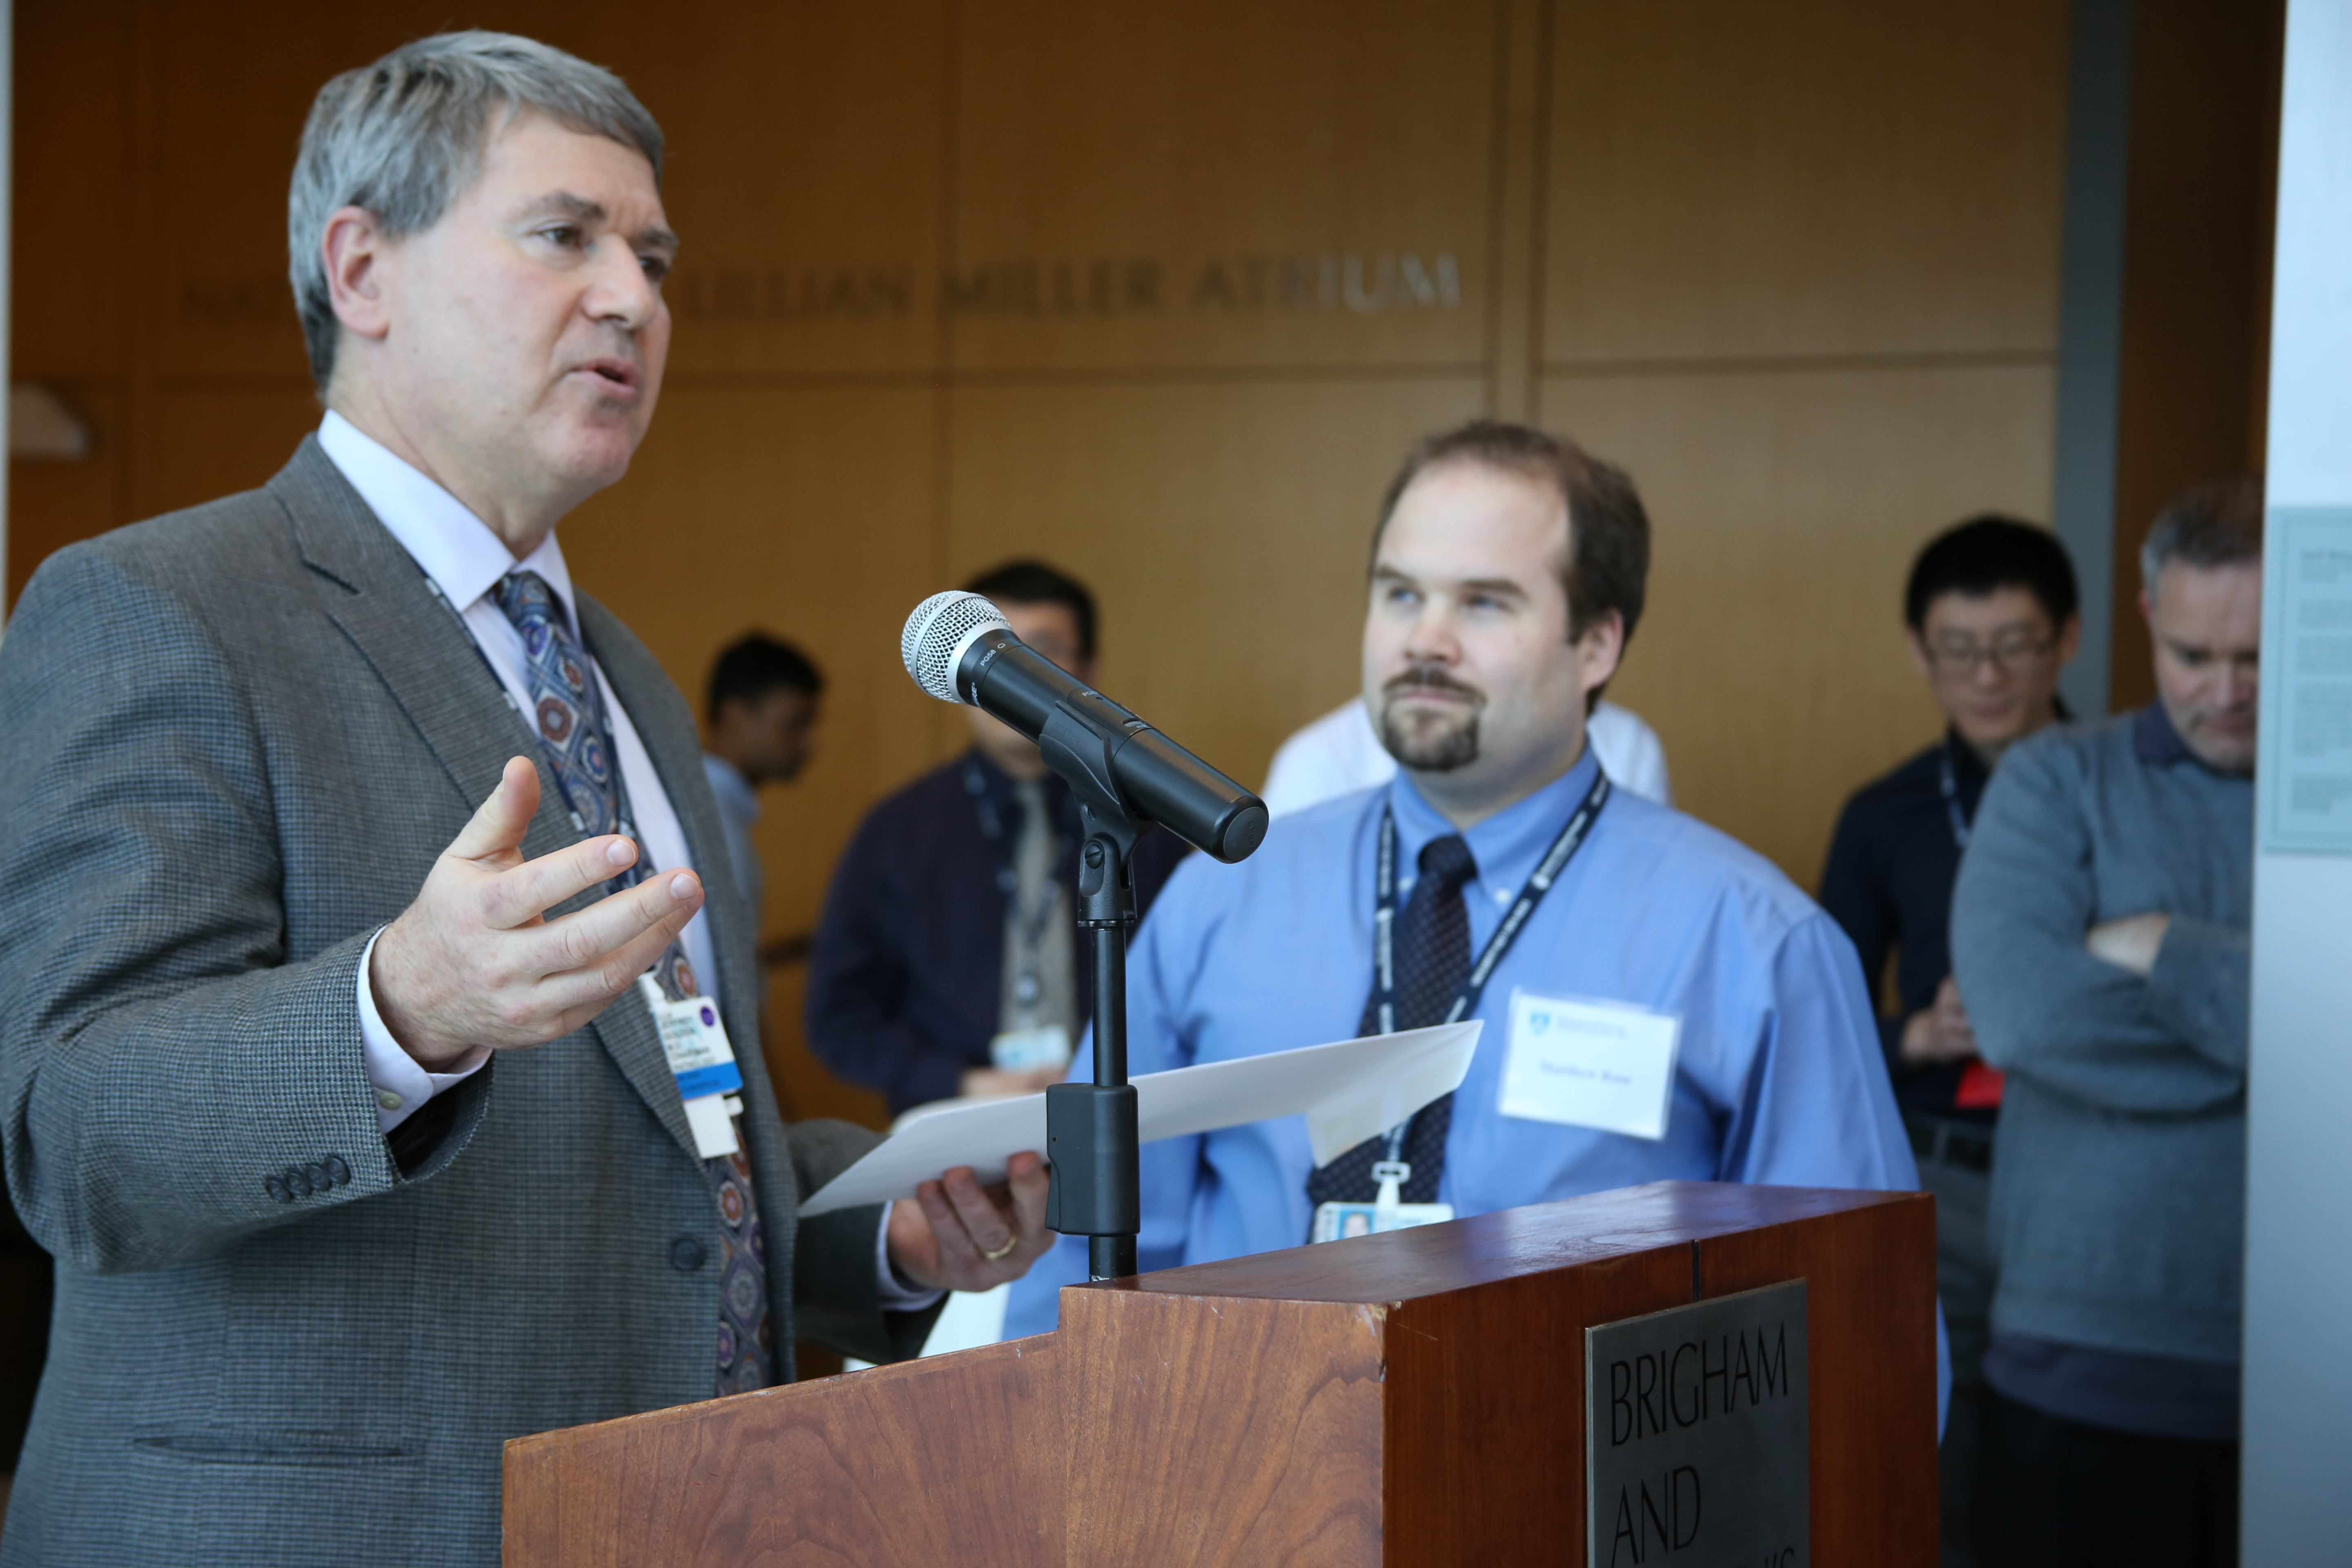 Jeffrey Golden, left, announces the award winners, including Matthew Rose, right, at the Department of Pathology's annual research celebration.